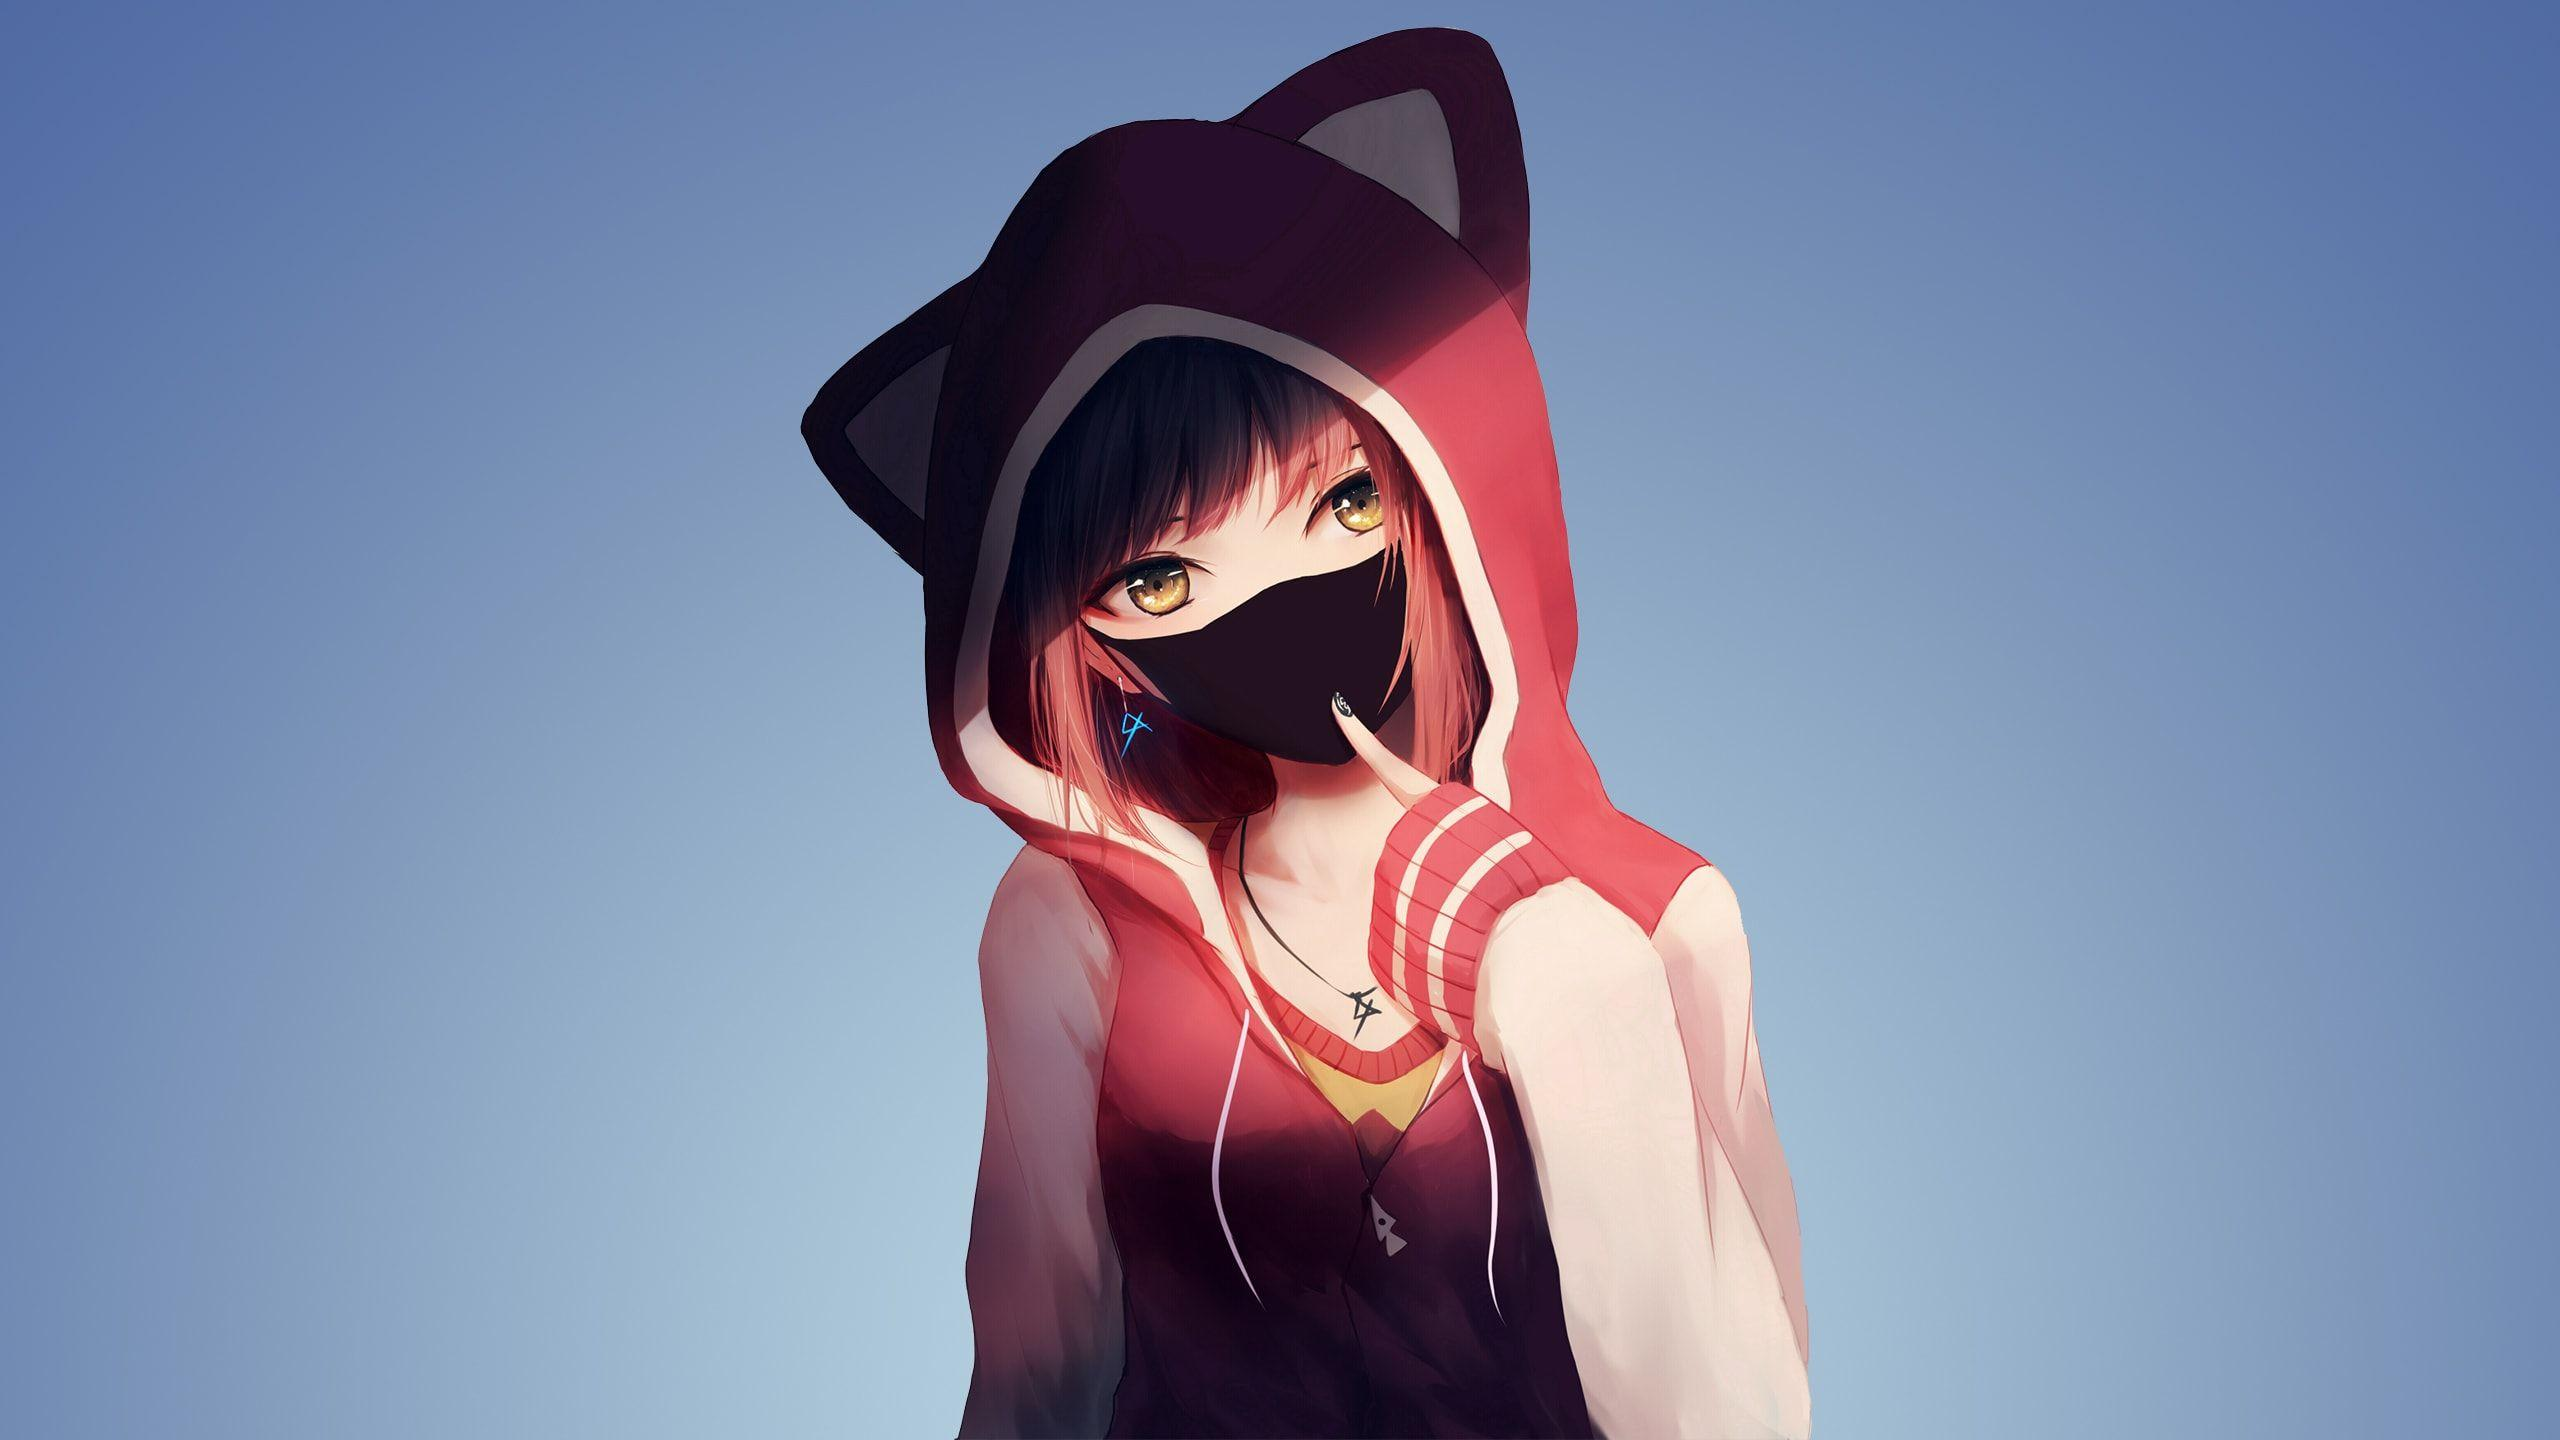 Anime Hoodie Wallpapers Wallpaper Cave